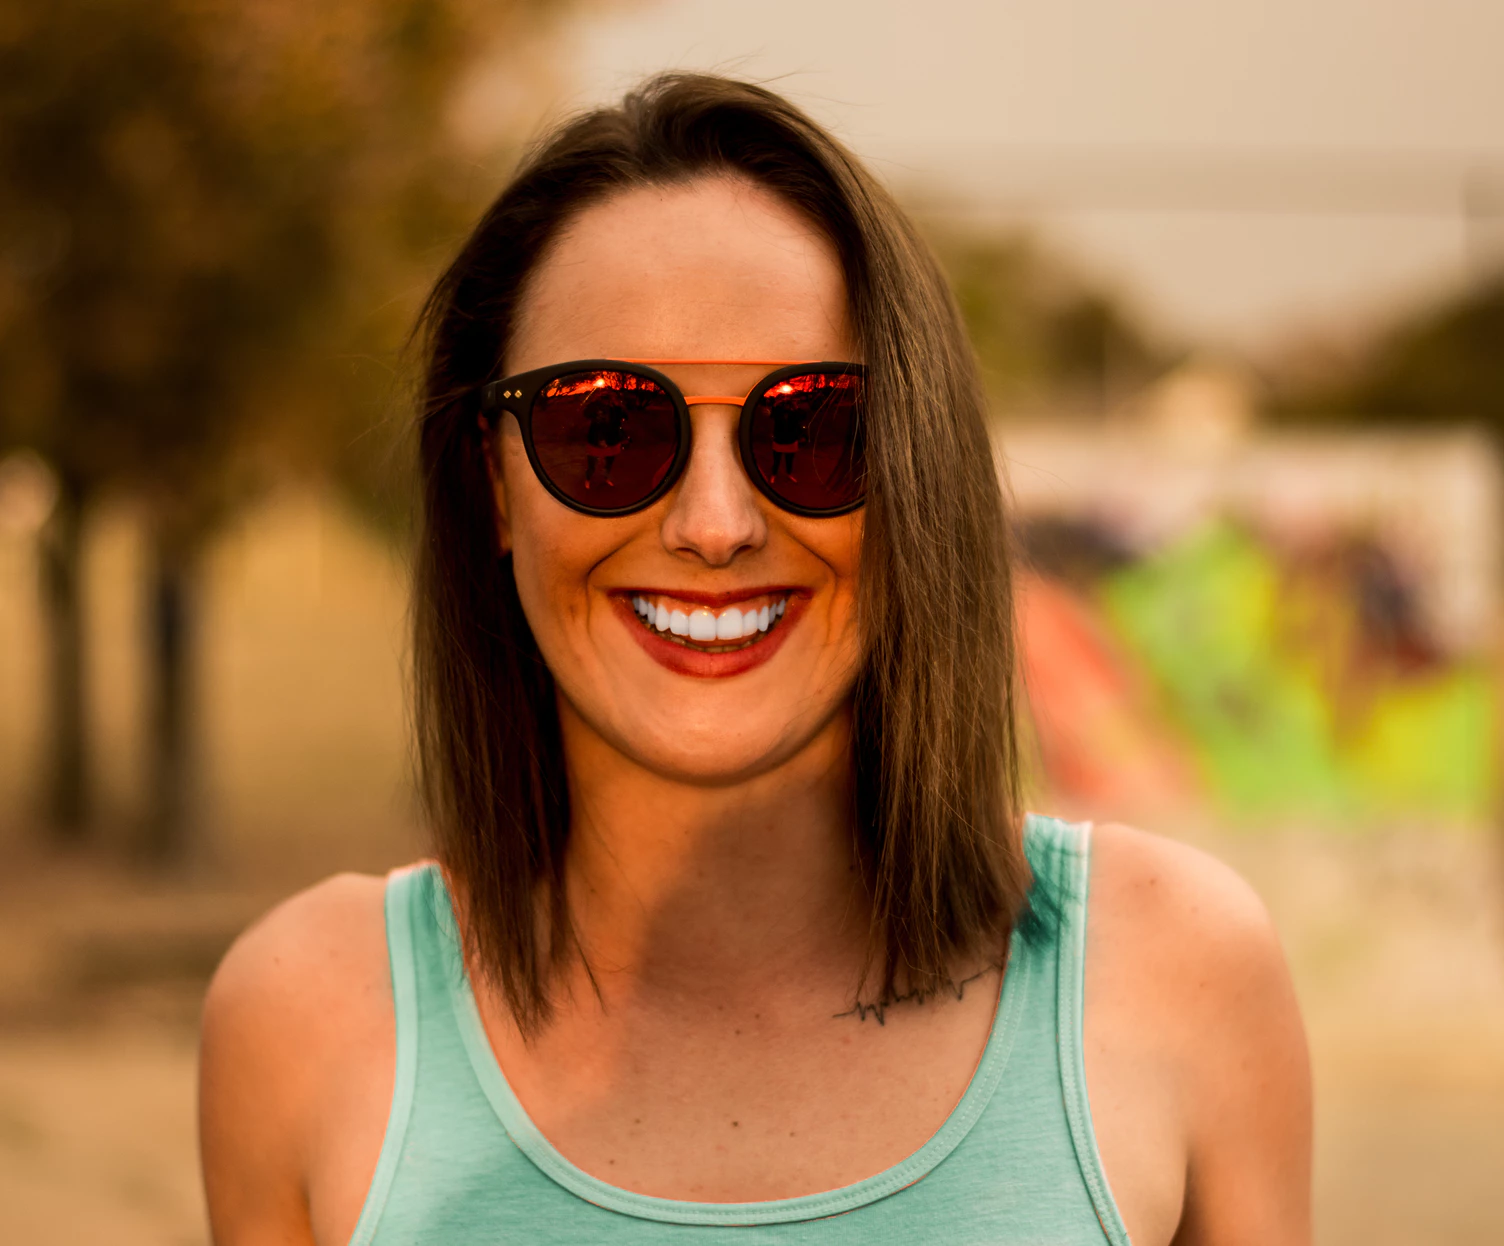 smiling woman sunglasses